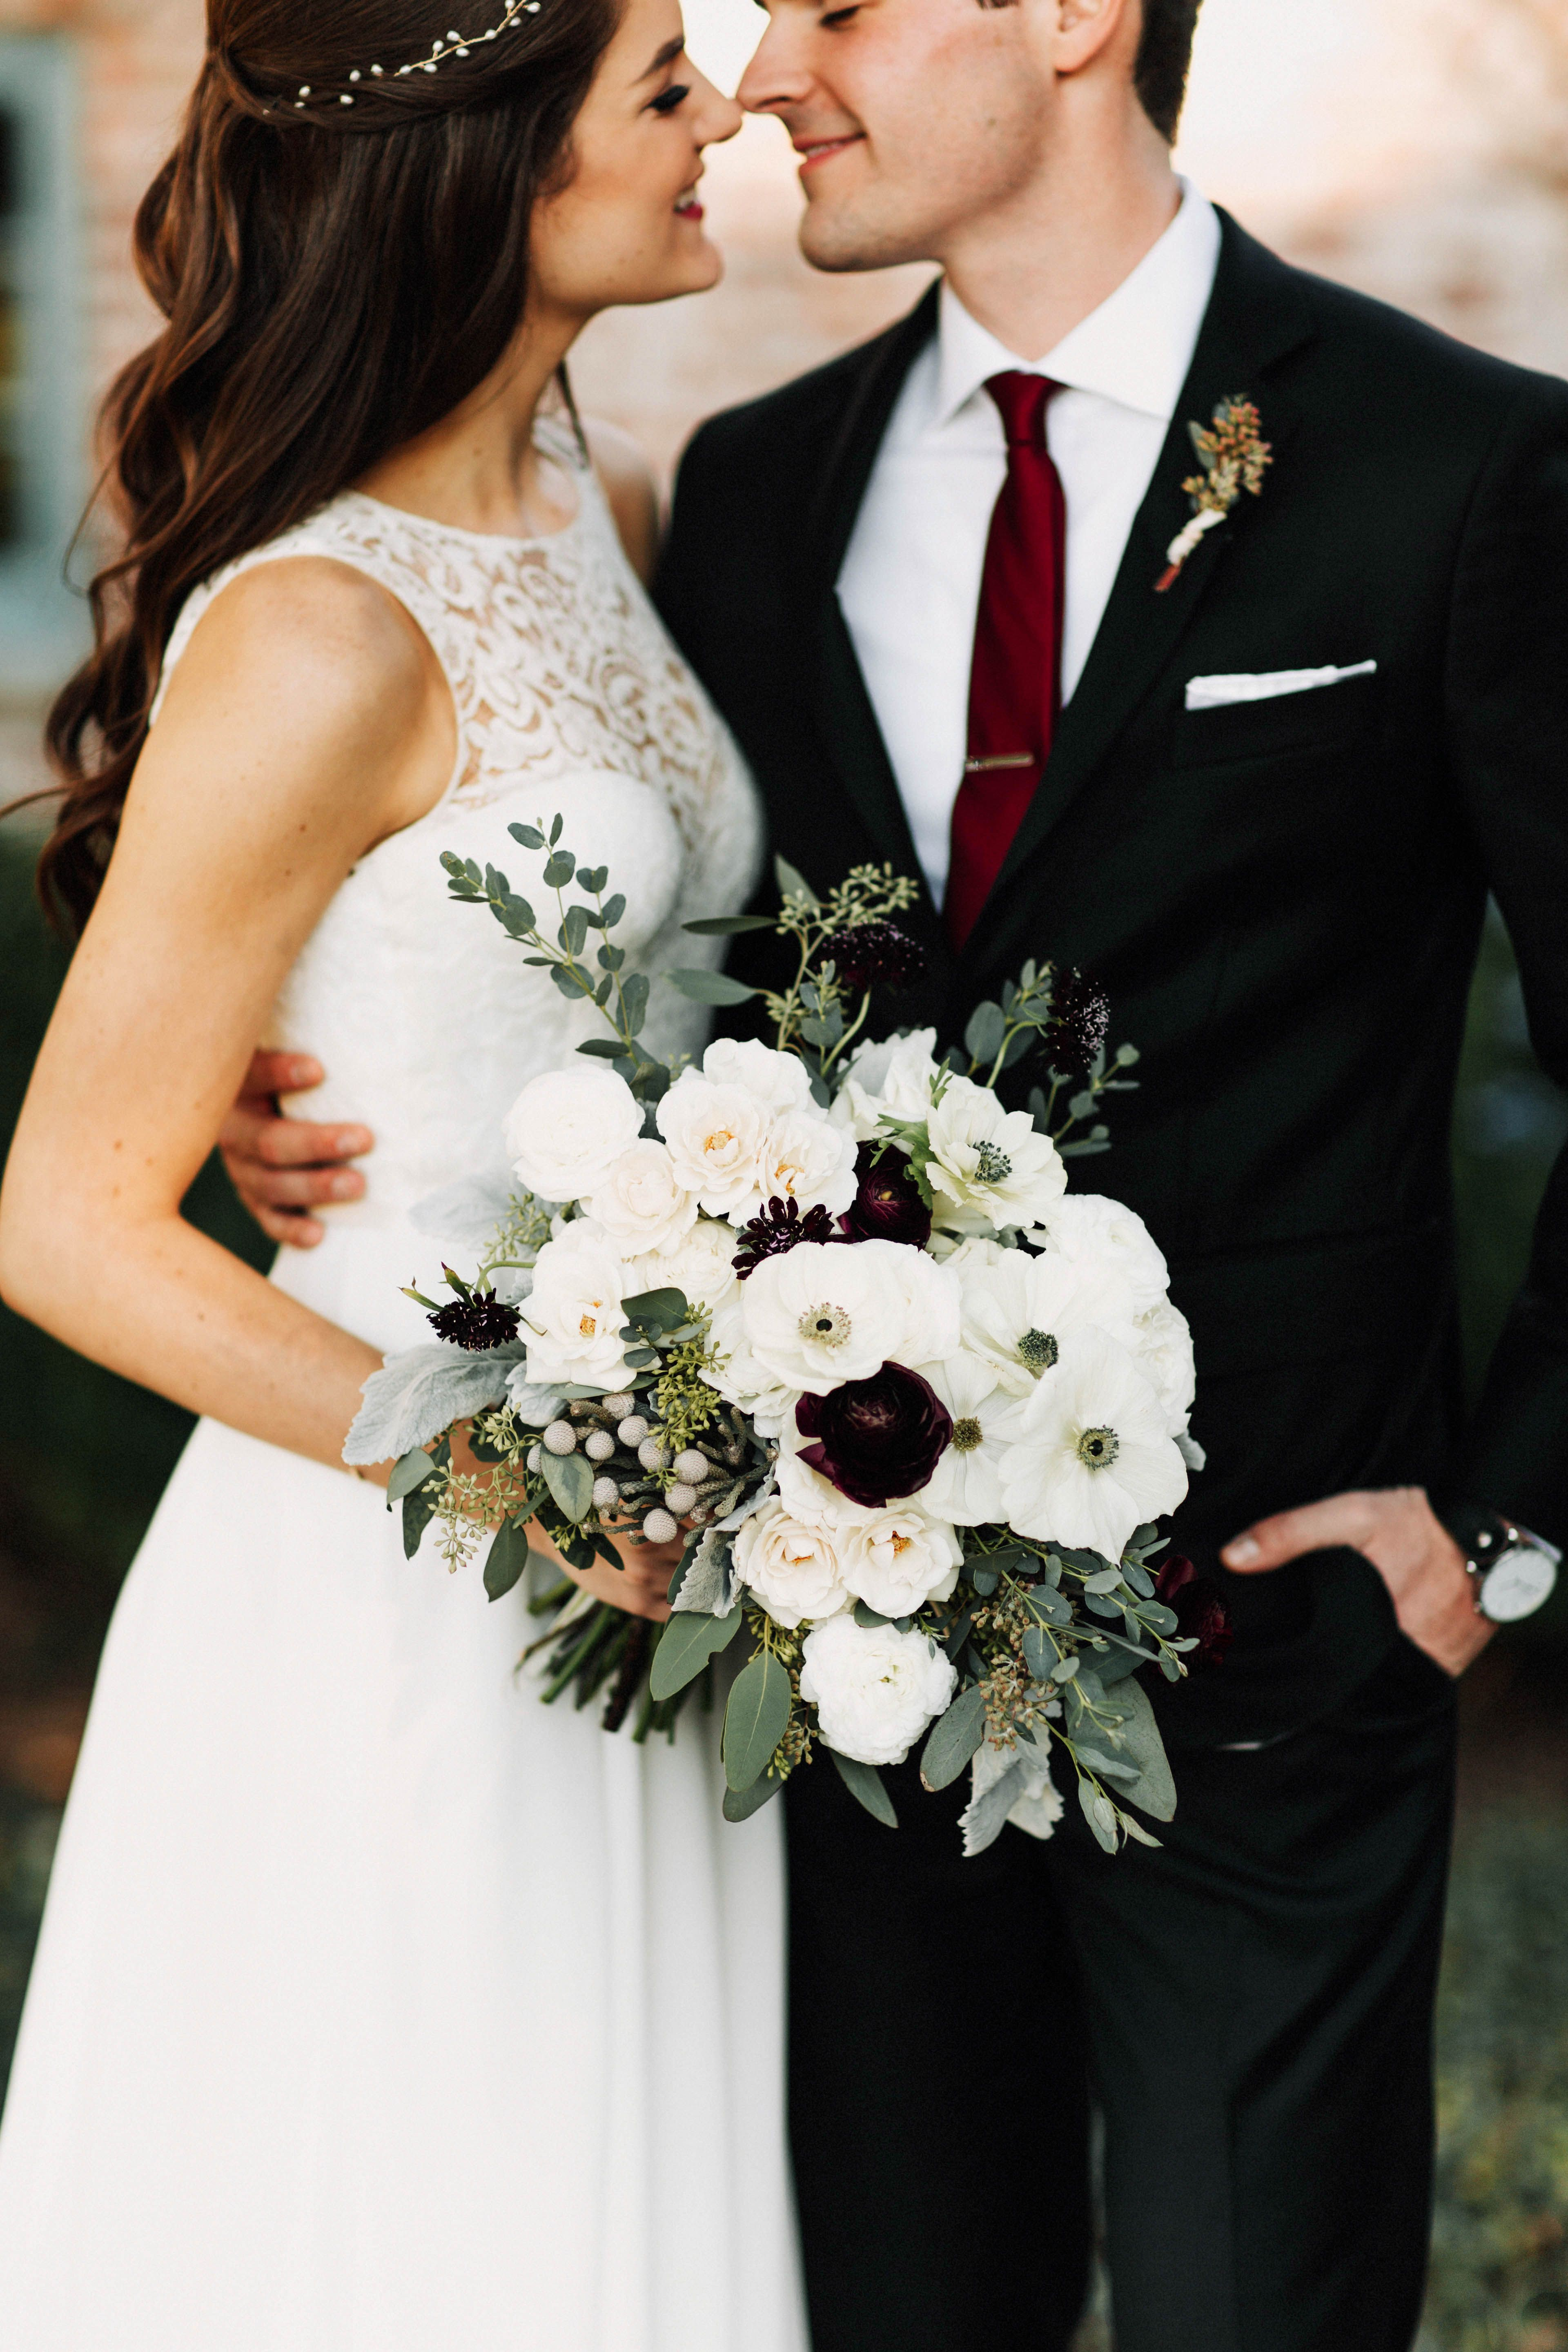 A Bride In Her Lace Gown Holds Her Loose Bridal Bouquet Of